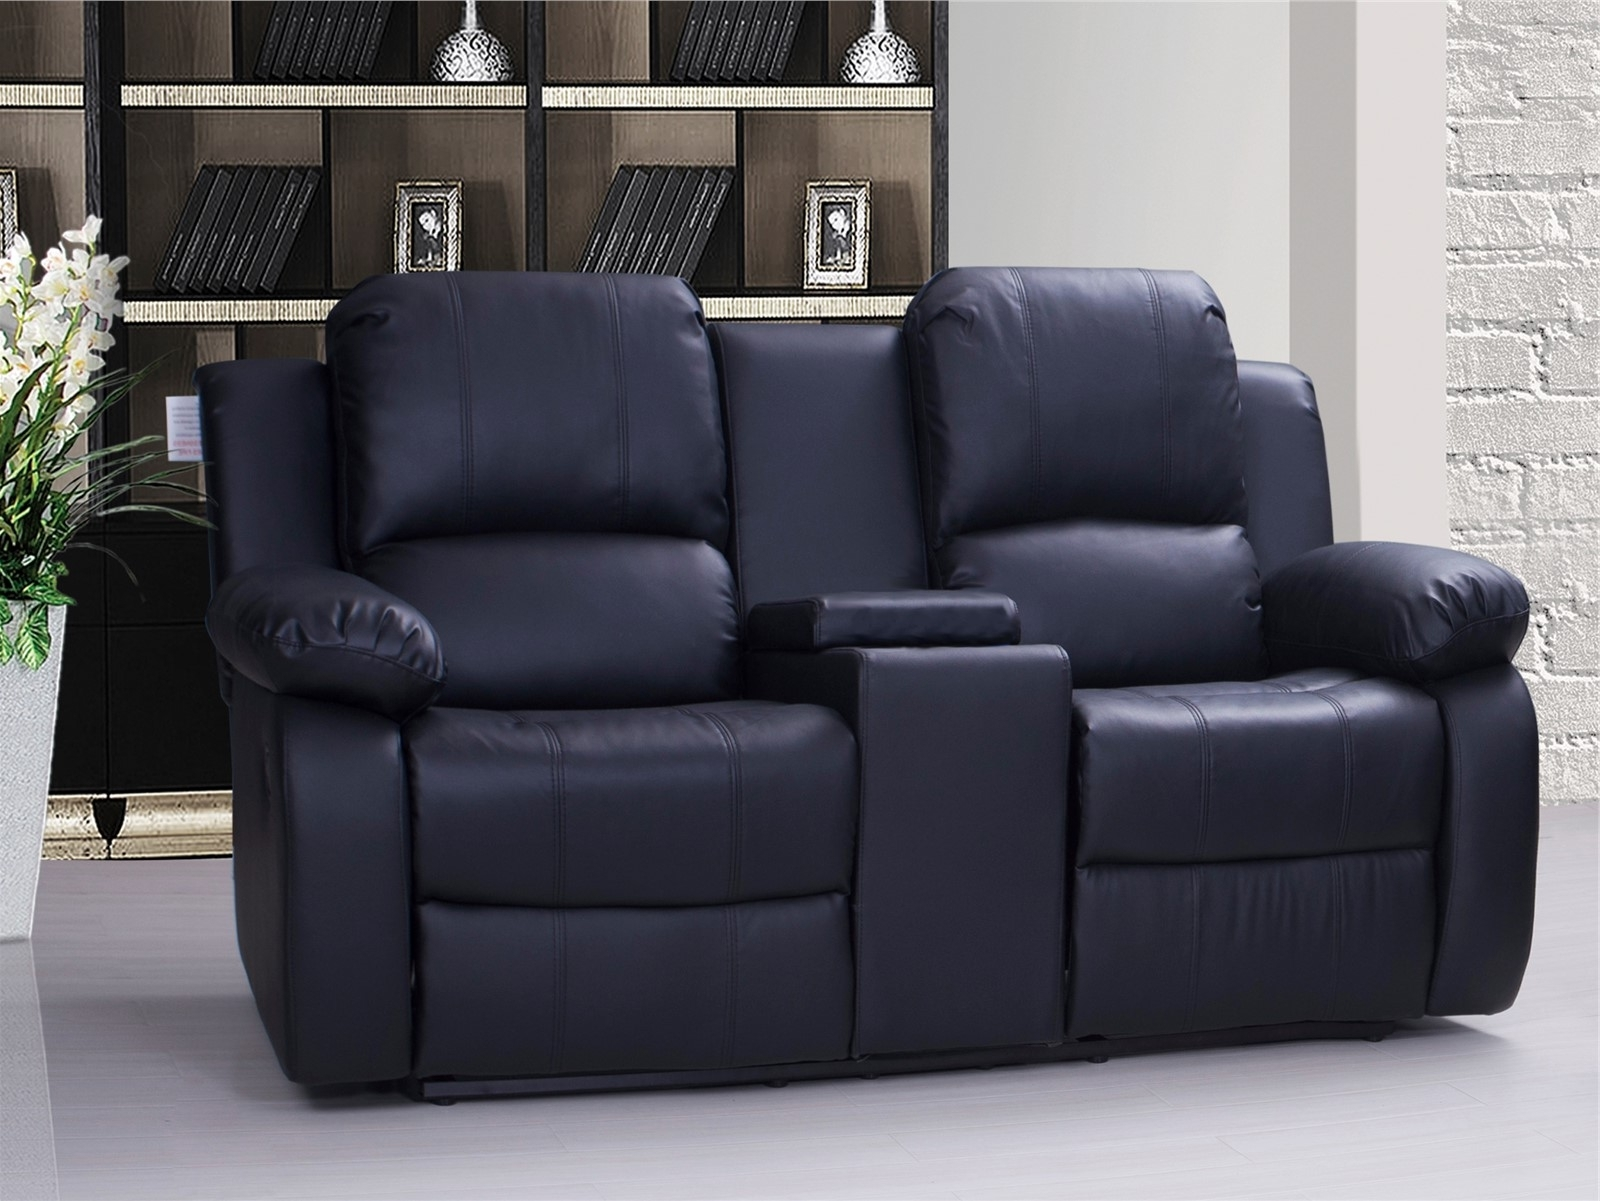 Recliners Chairs & Sofa : Black Leather Reclining Sofa With Seater Pertaining To Popular Red Leather Reclining Sofas And Loveseats (View 13 of 20)